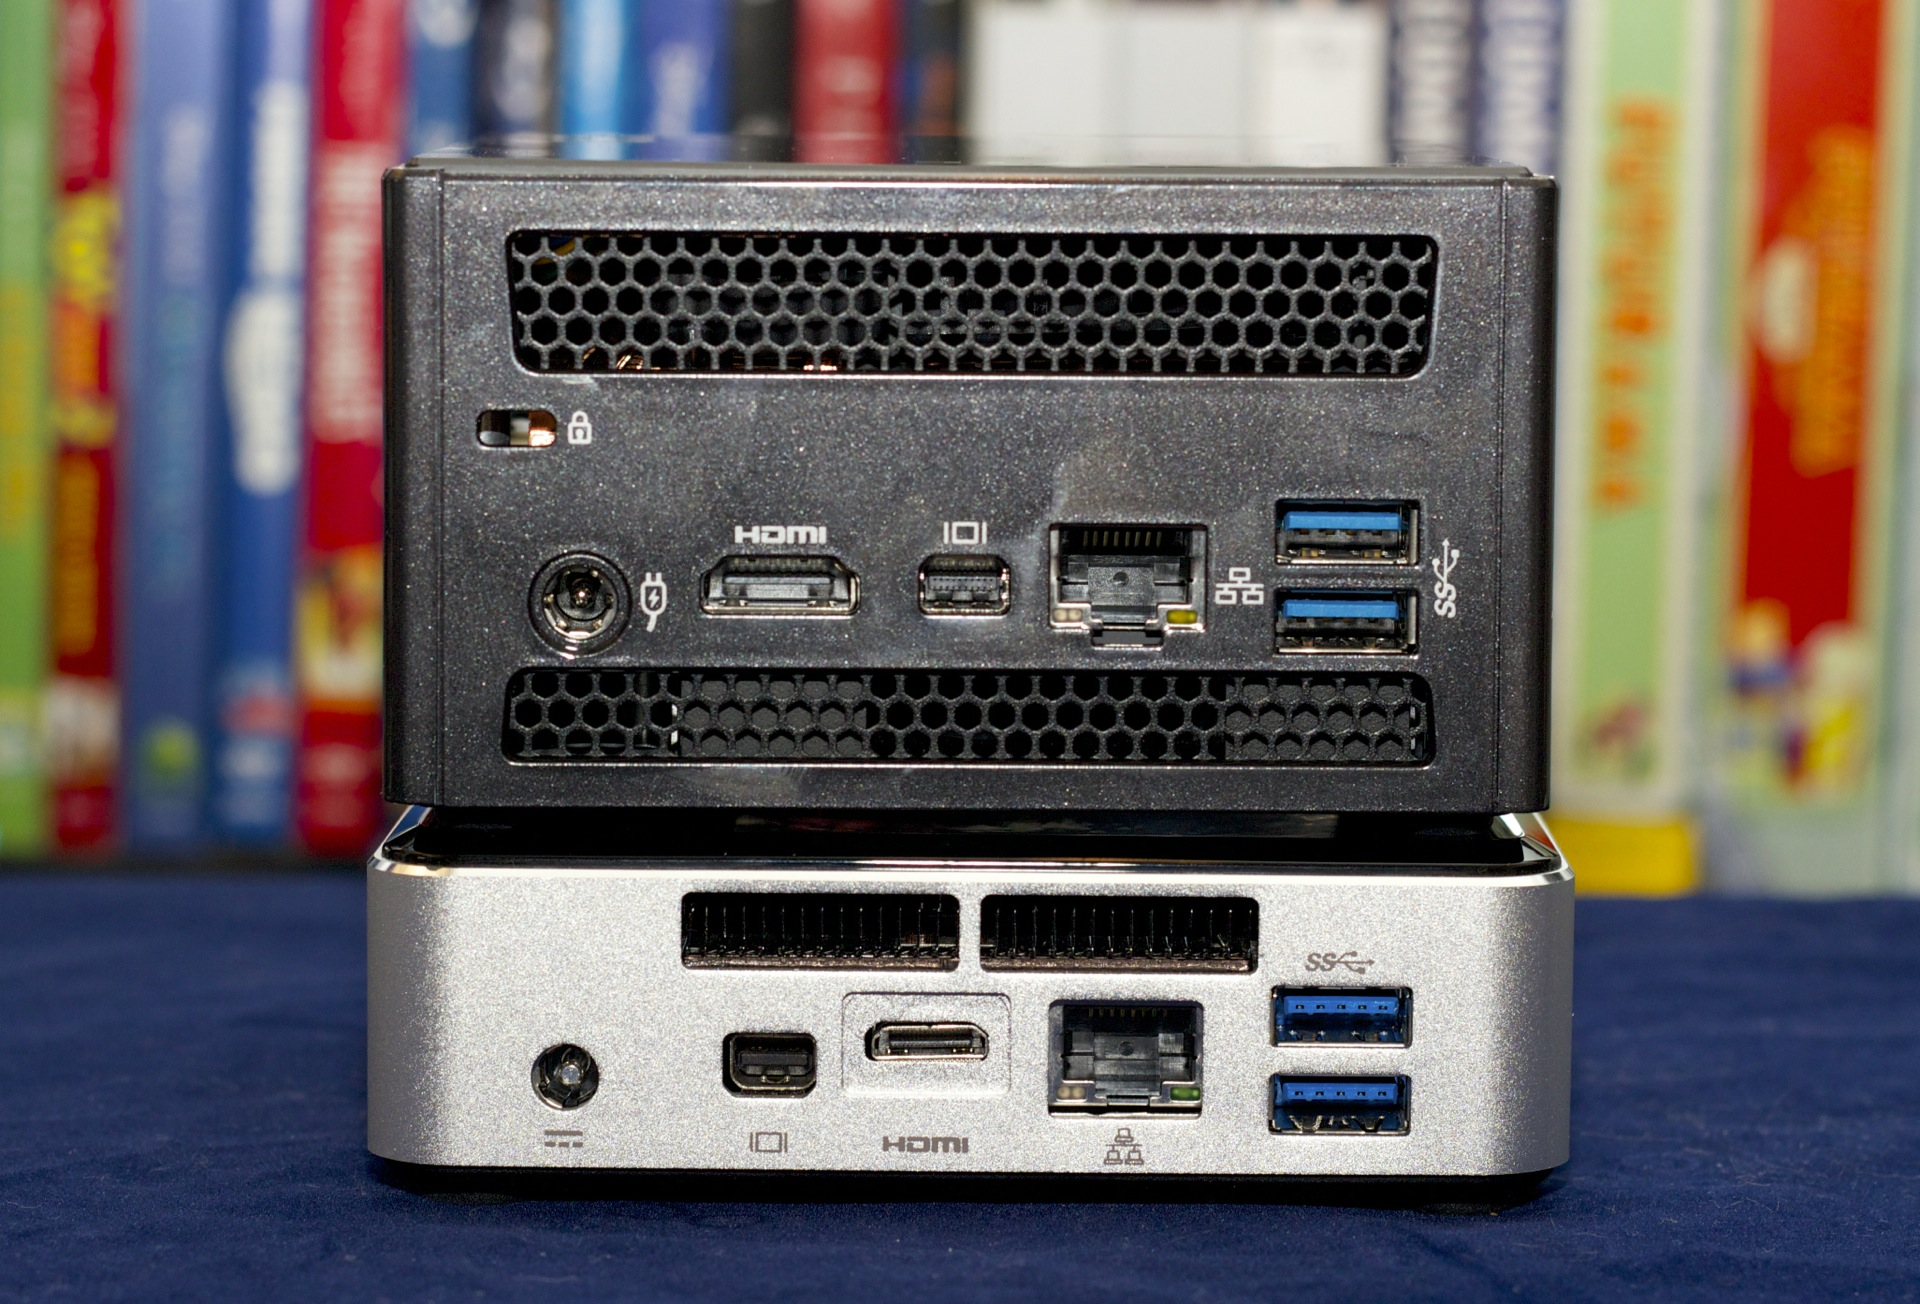 The port layout is essentially identical—two USB 3.0 ports and an audio jack on the front; two USB 3.0 ports, a gigabit Ethernet jack, a mini DisplayPort, a full-size HDMI port, and a Kensington lock slot on the back. The NUC uses mini-HDMI, so the Brix will save you the cost of an adapter if you want to hook this thing up to your TV or an HDMI-equipped monitor.